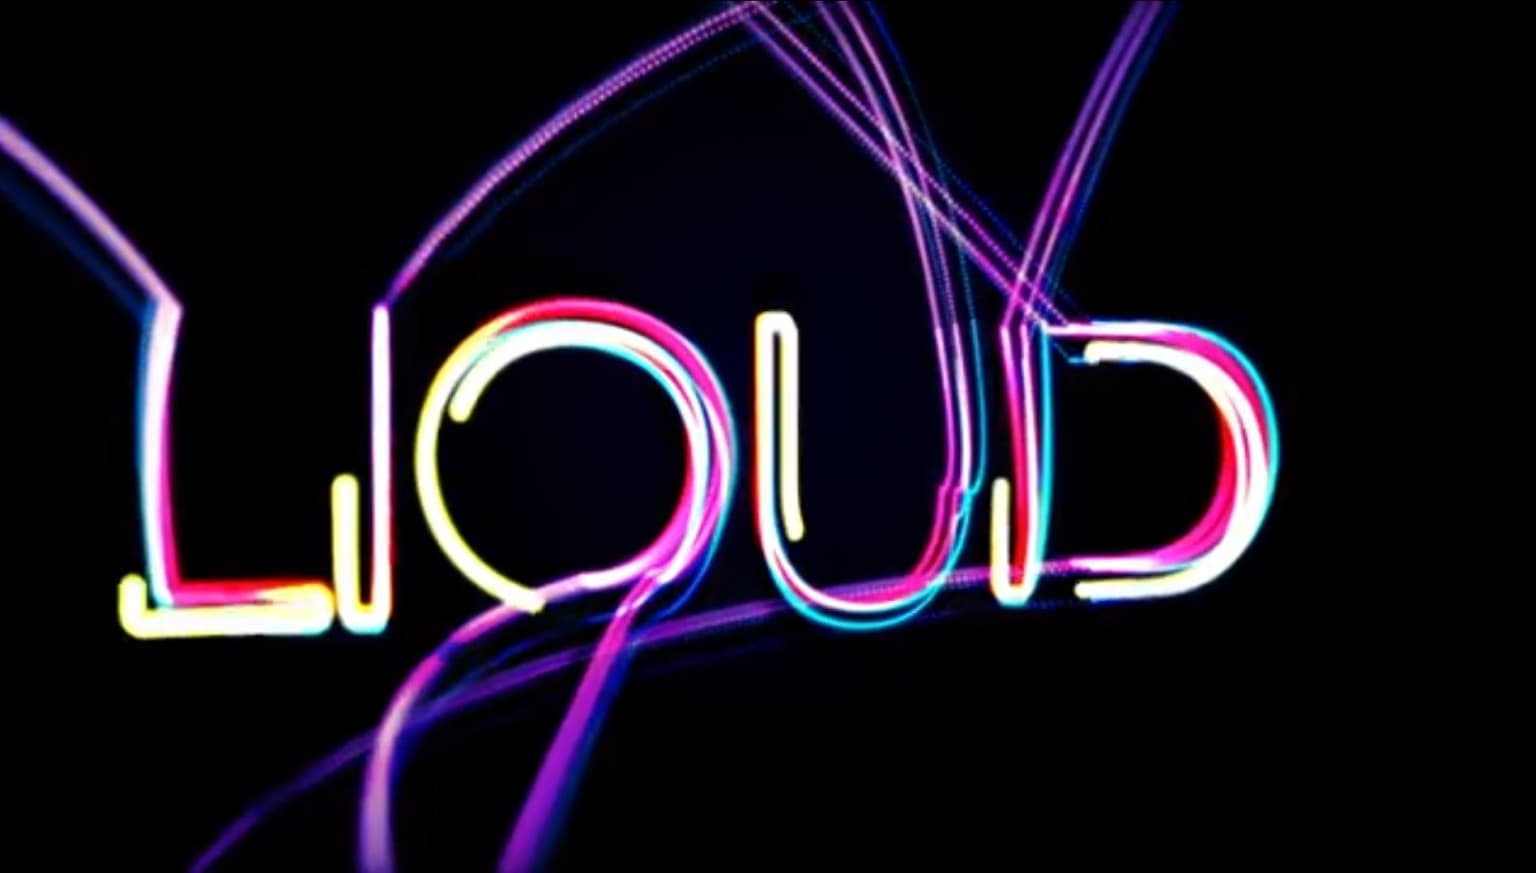 Liquid - Animation